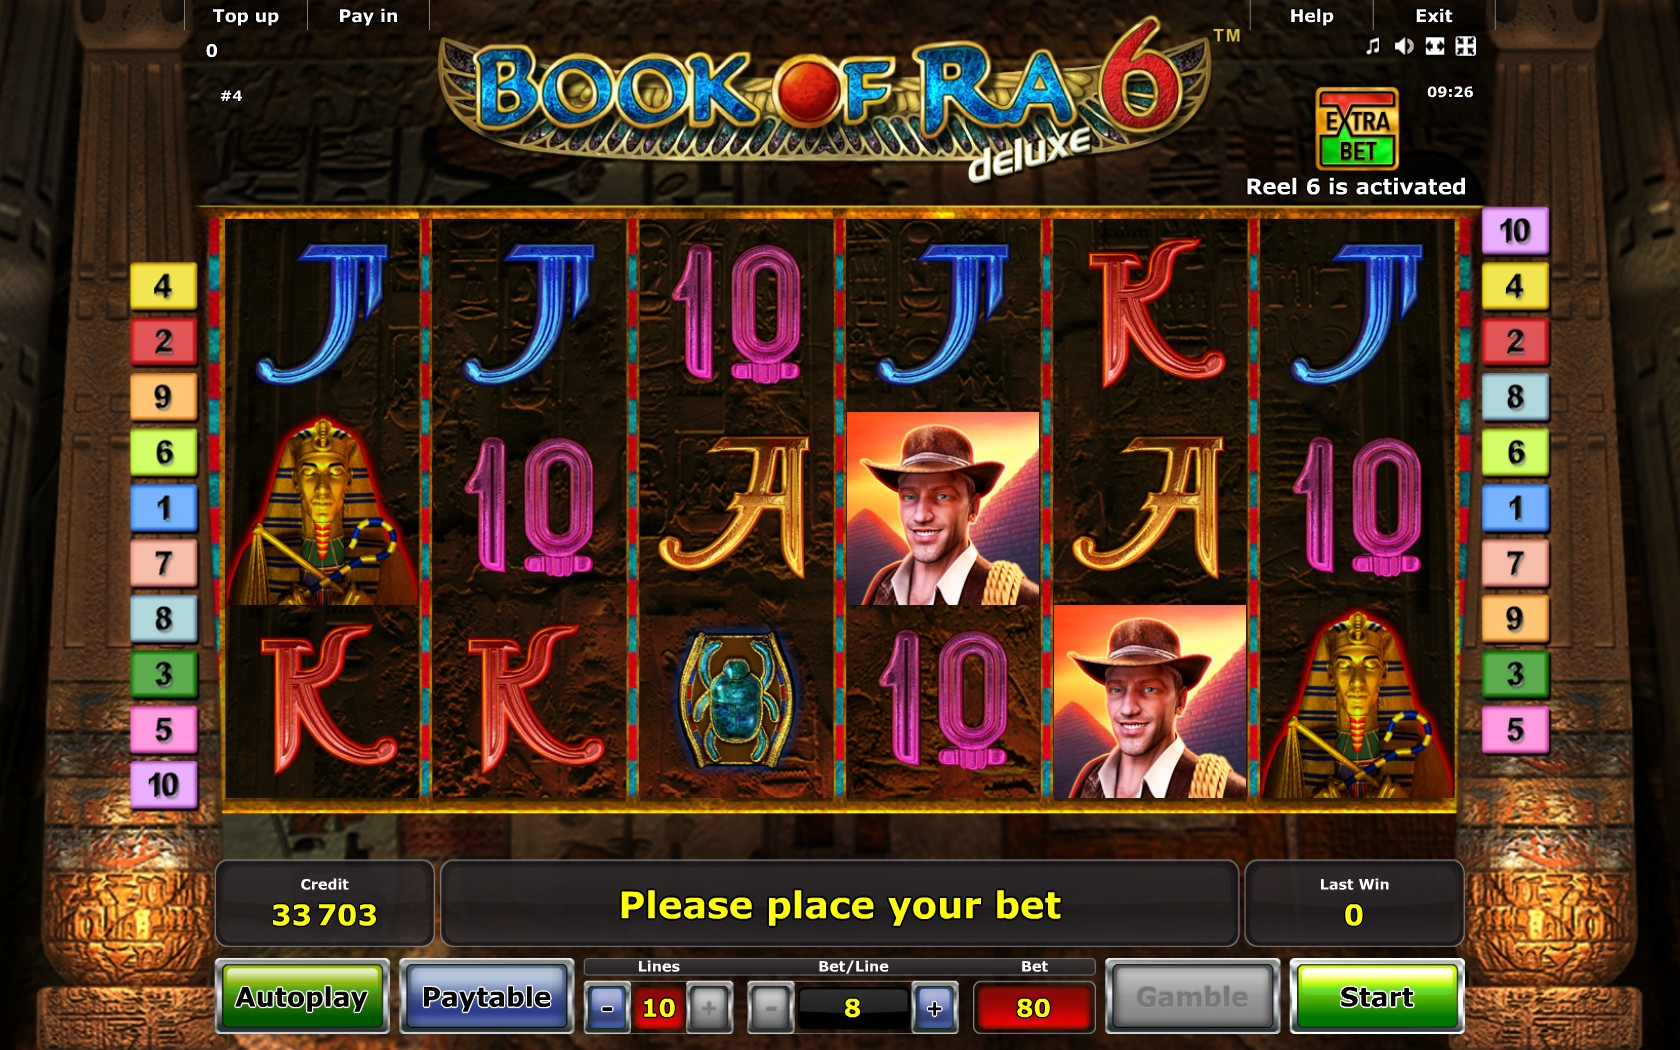 casino online schweiz www.book of ra